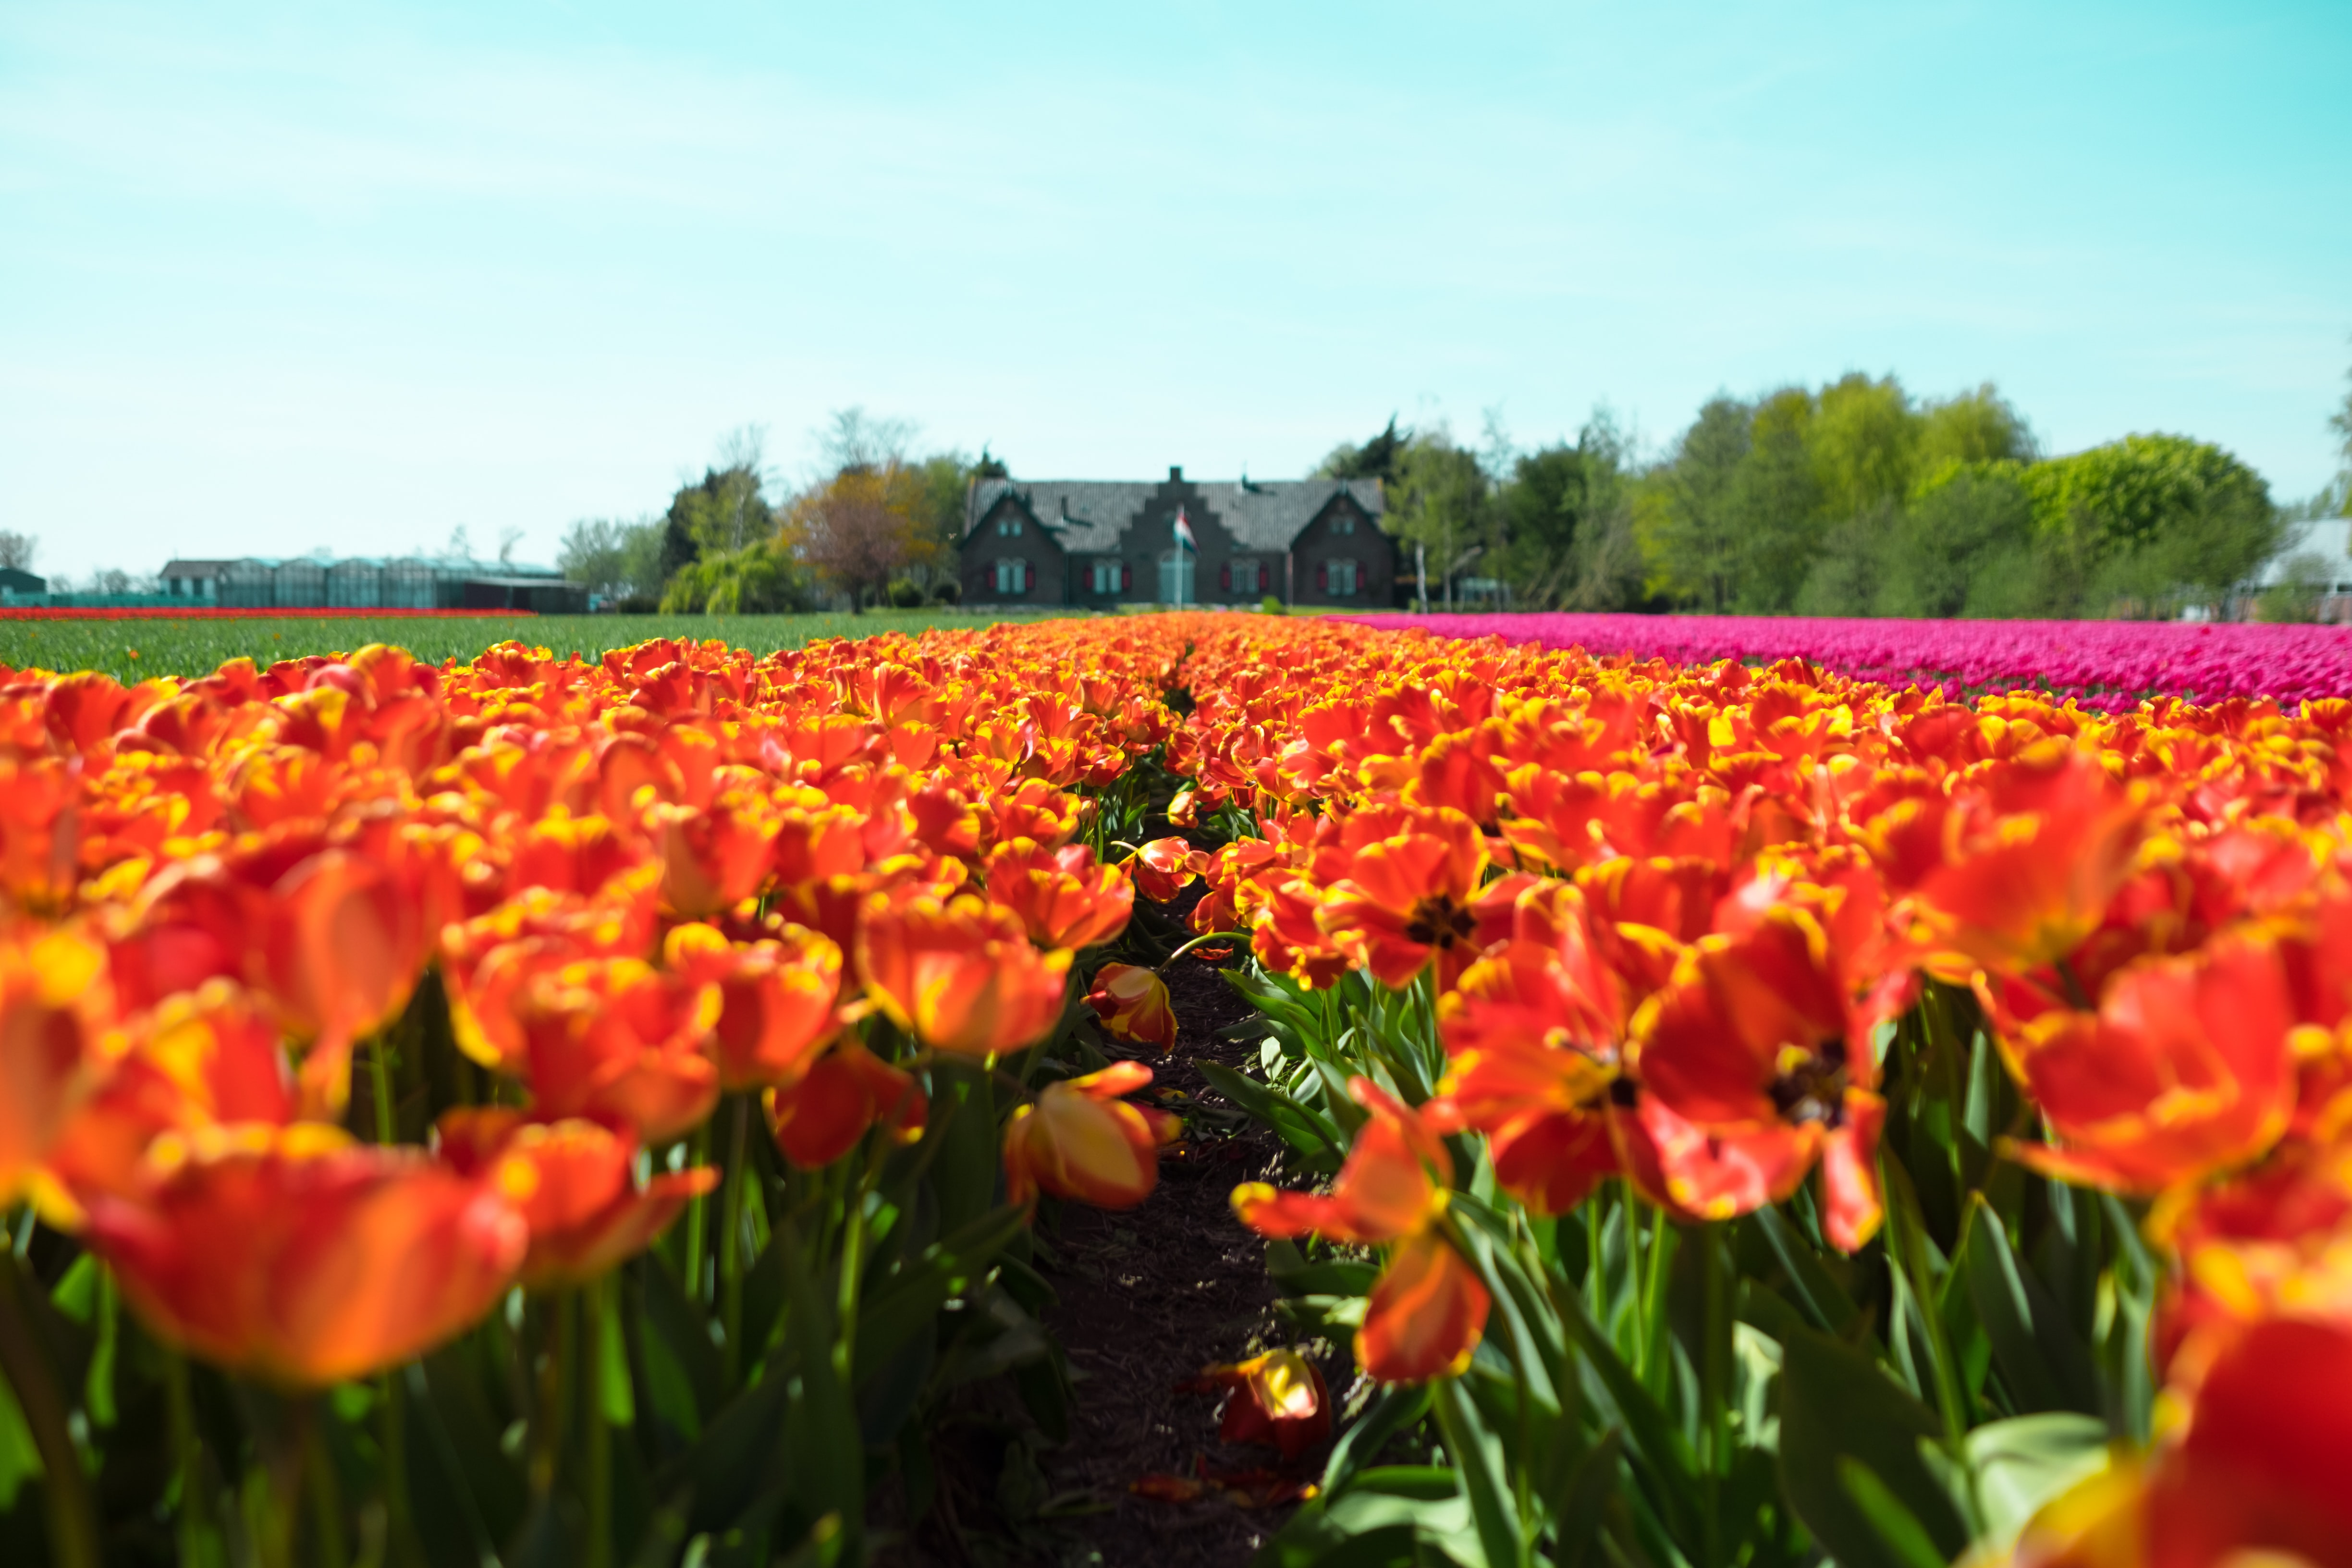 Field of tulips in bloom by a country house